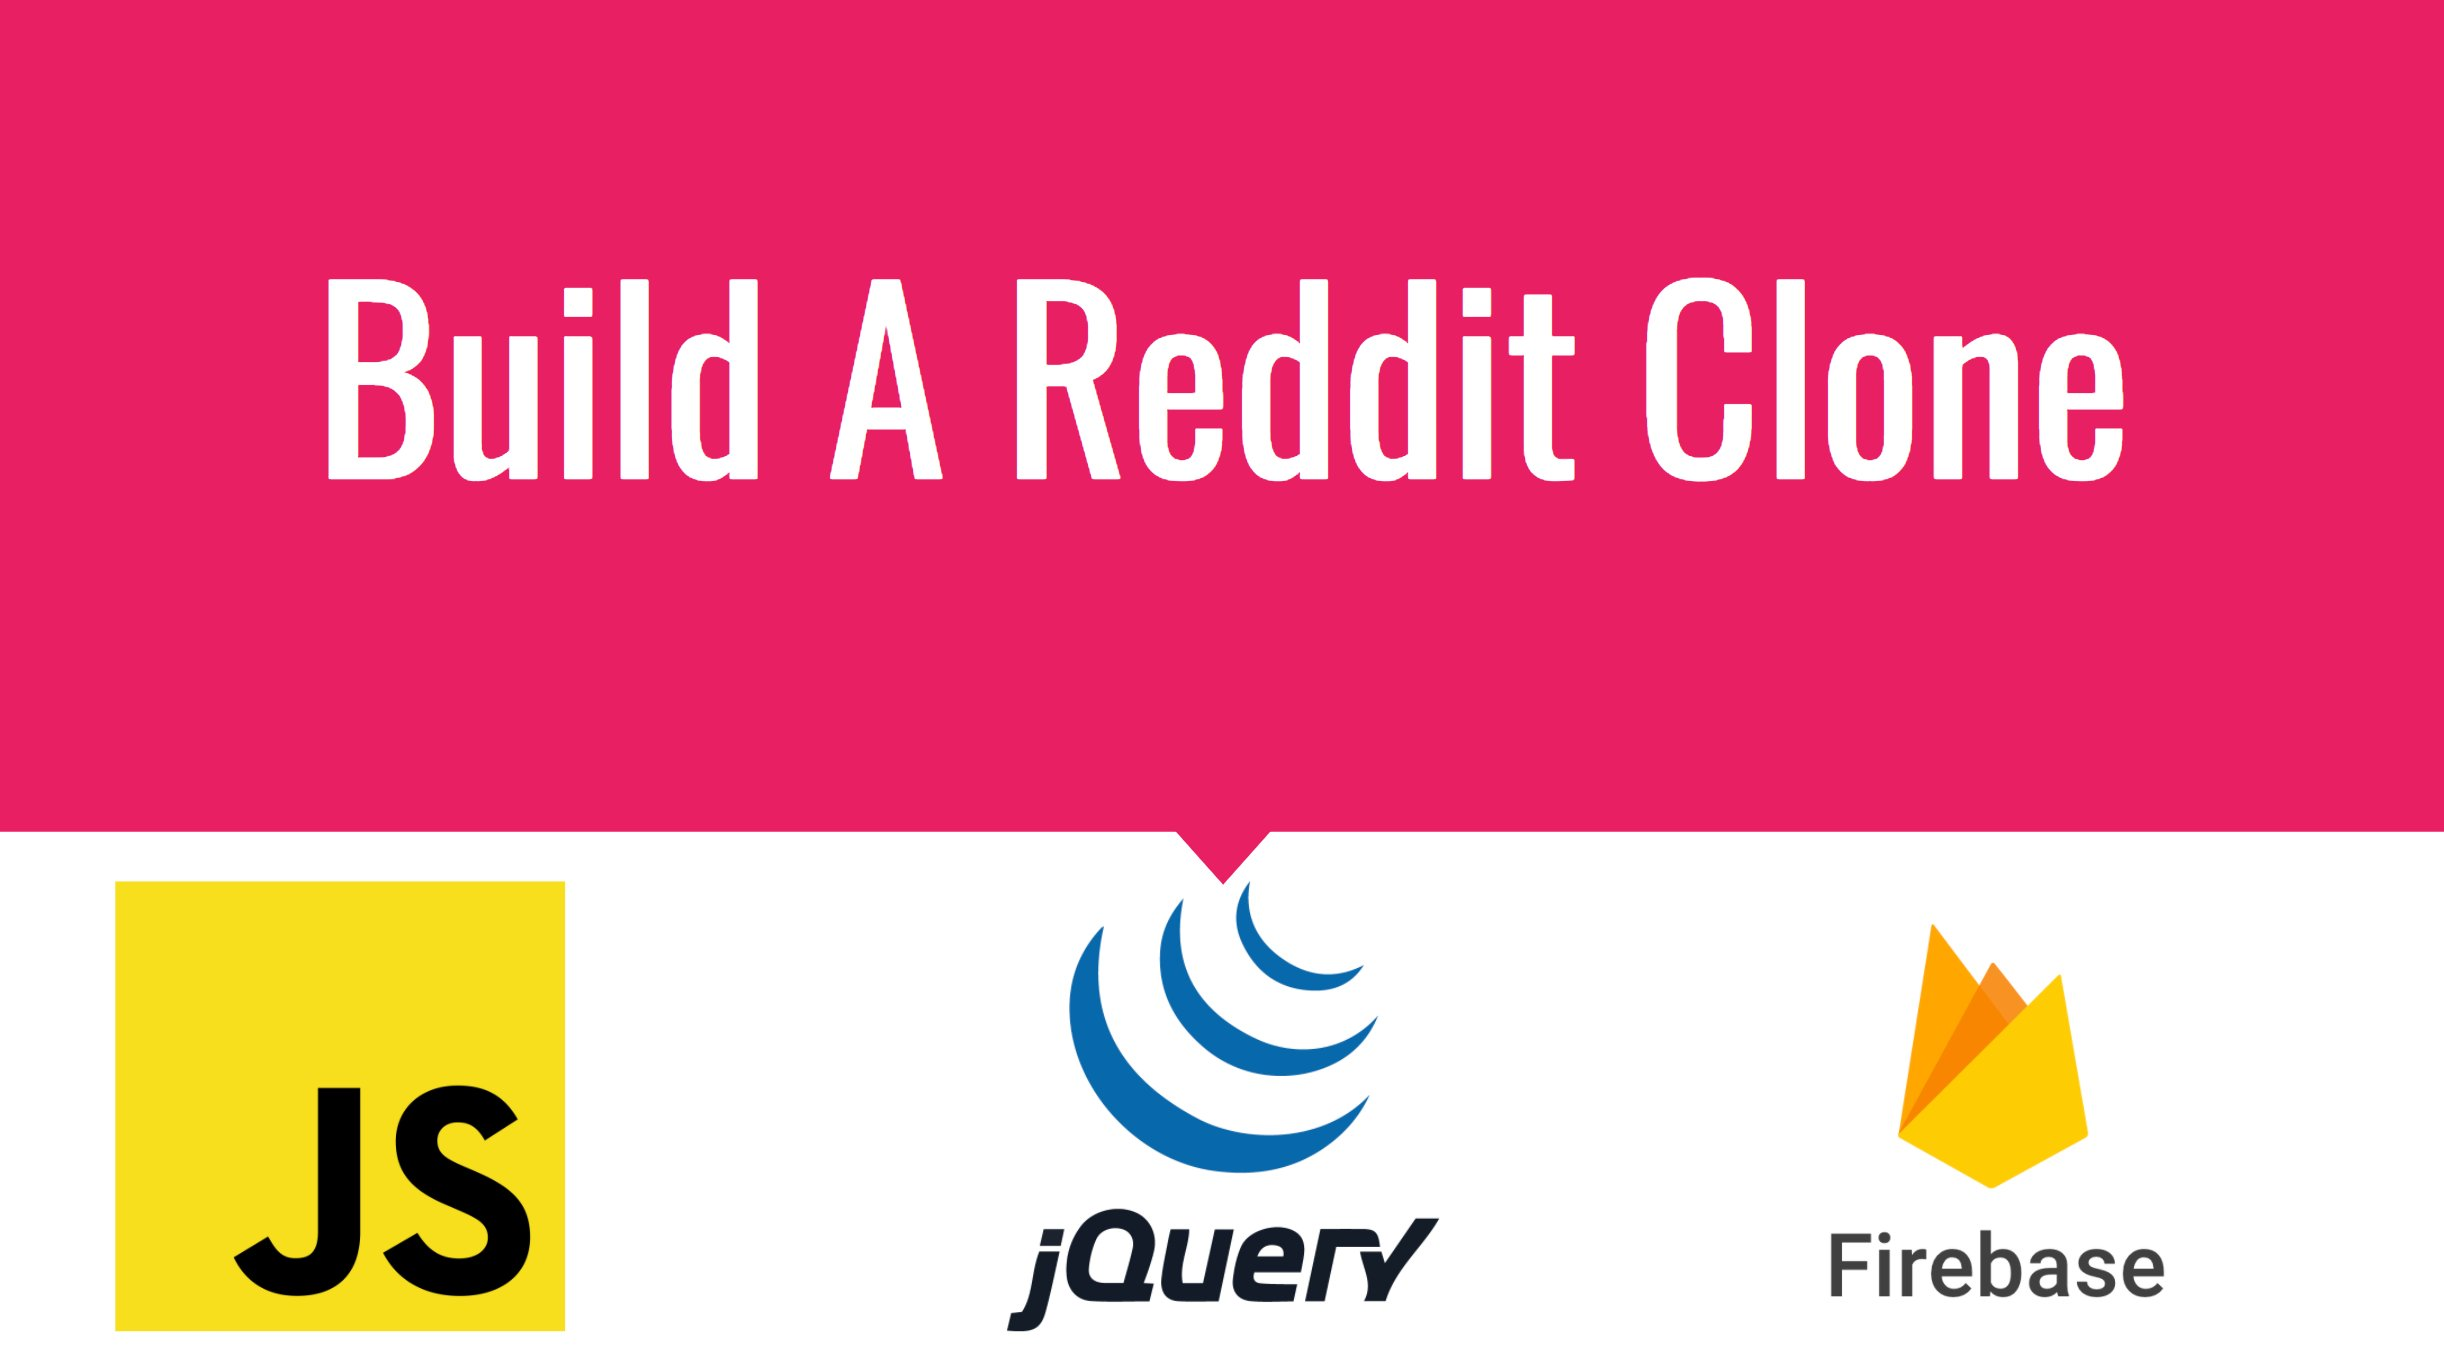 Build a Reddit Clone with jQuery and Firebase